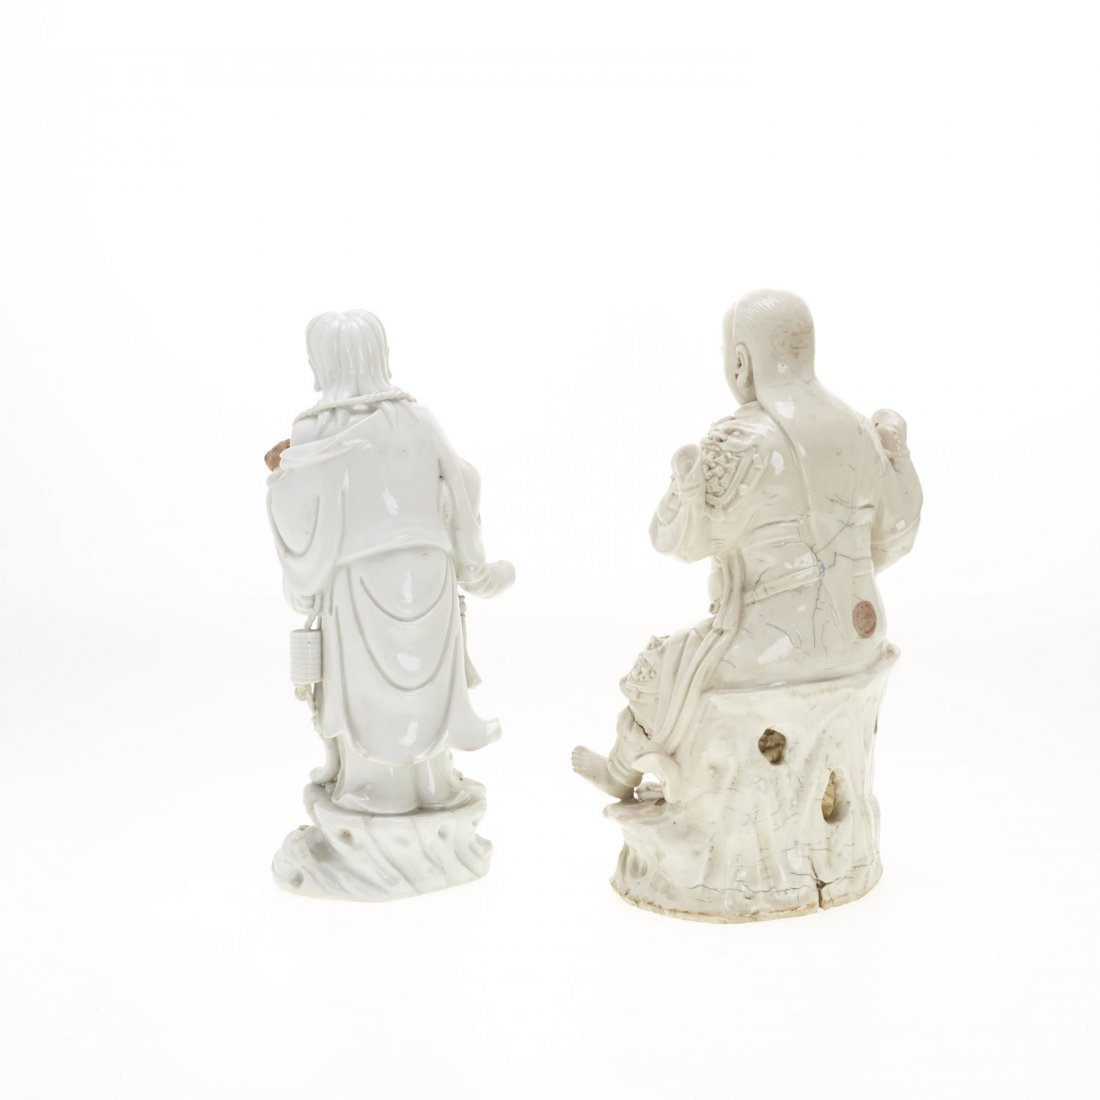 (2) Chinese blanc de chine figures - 7